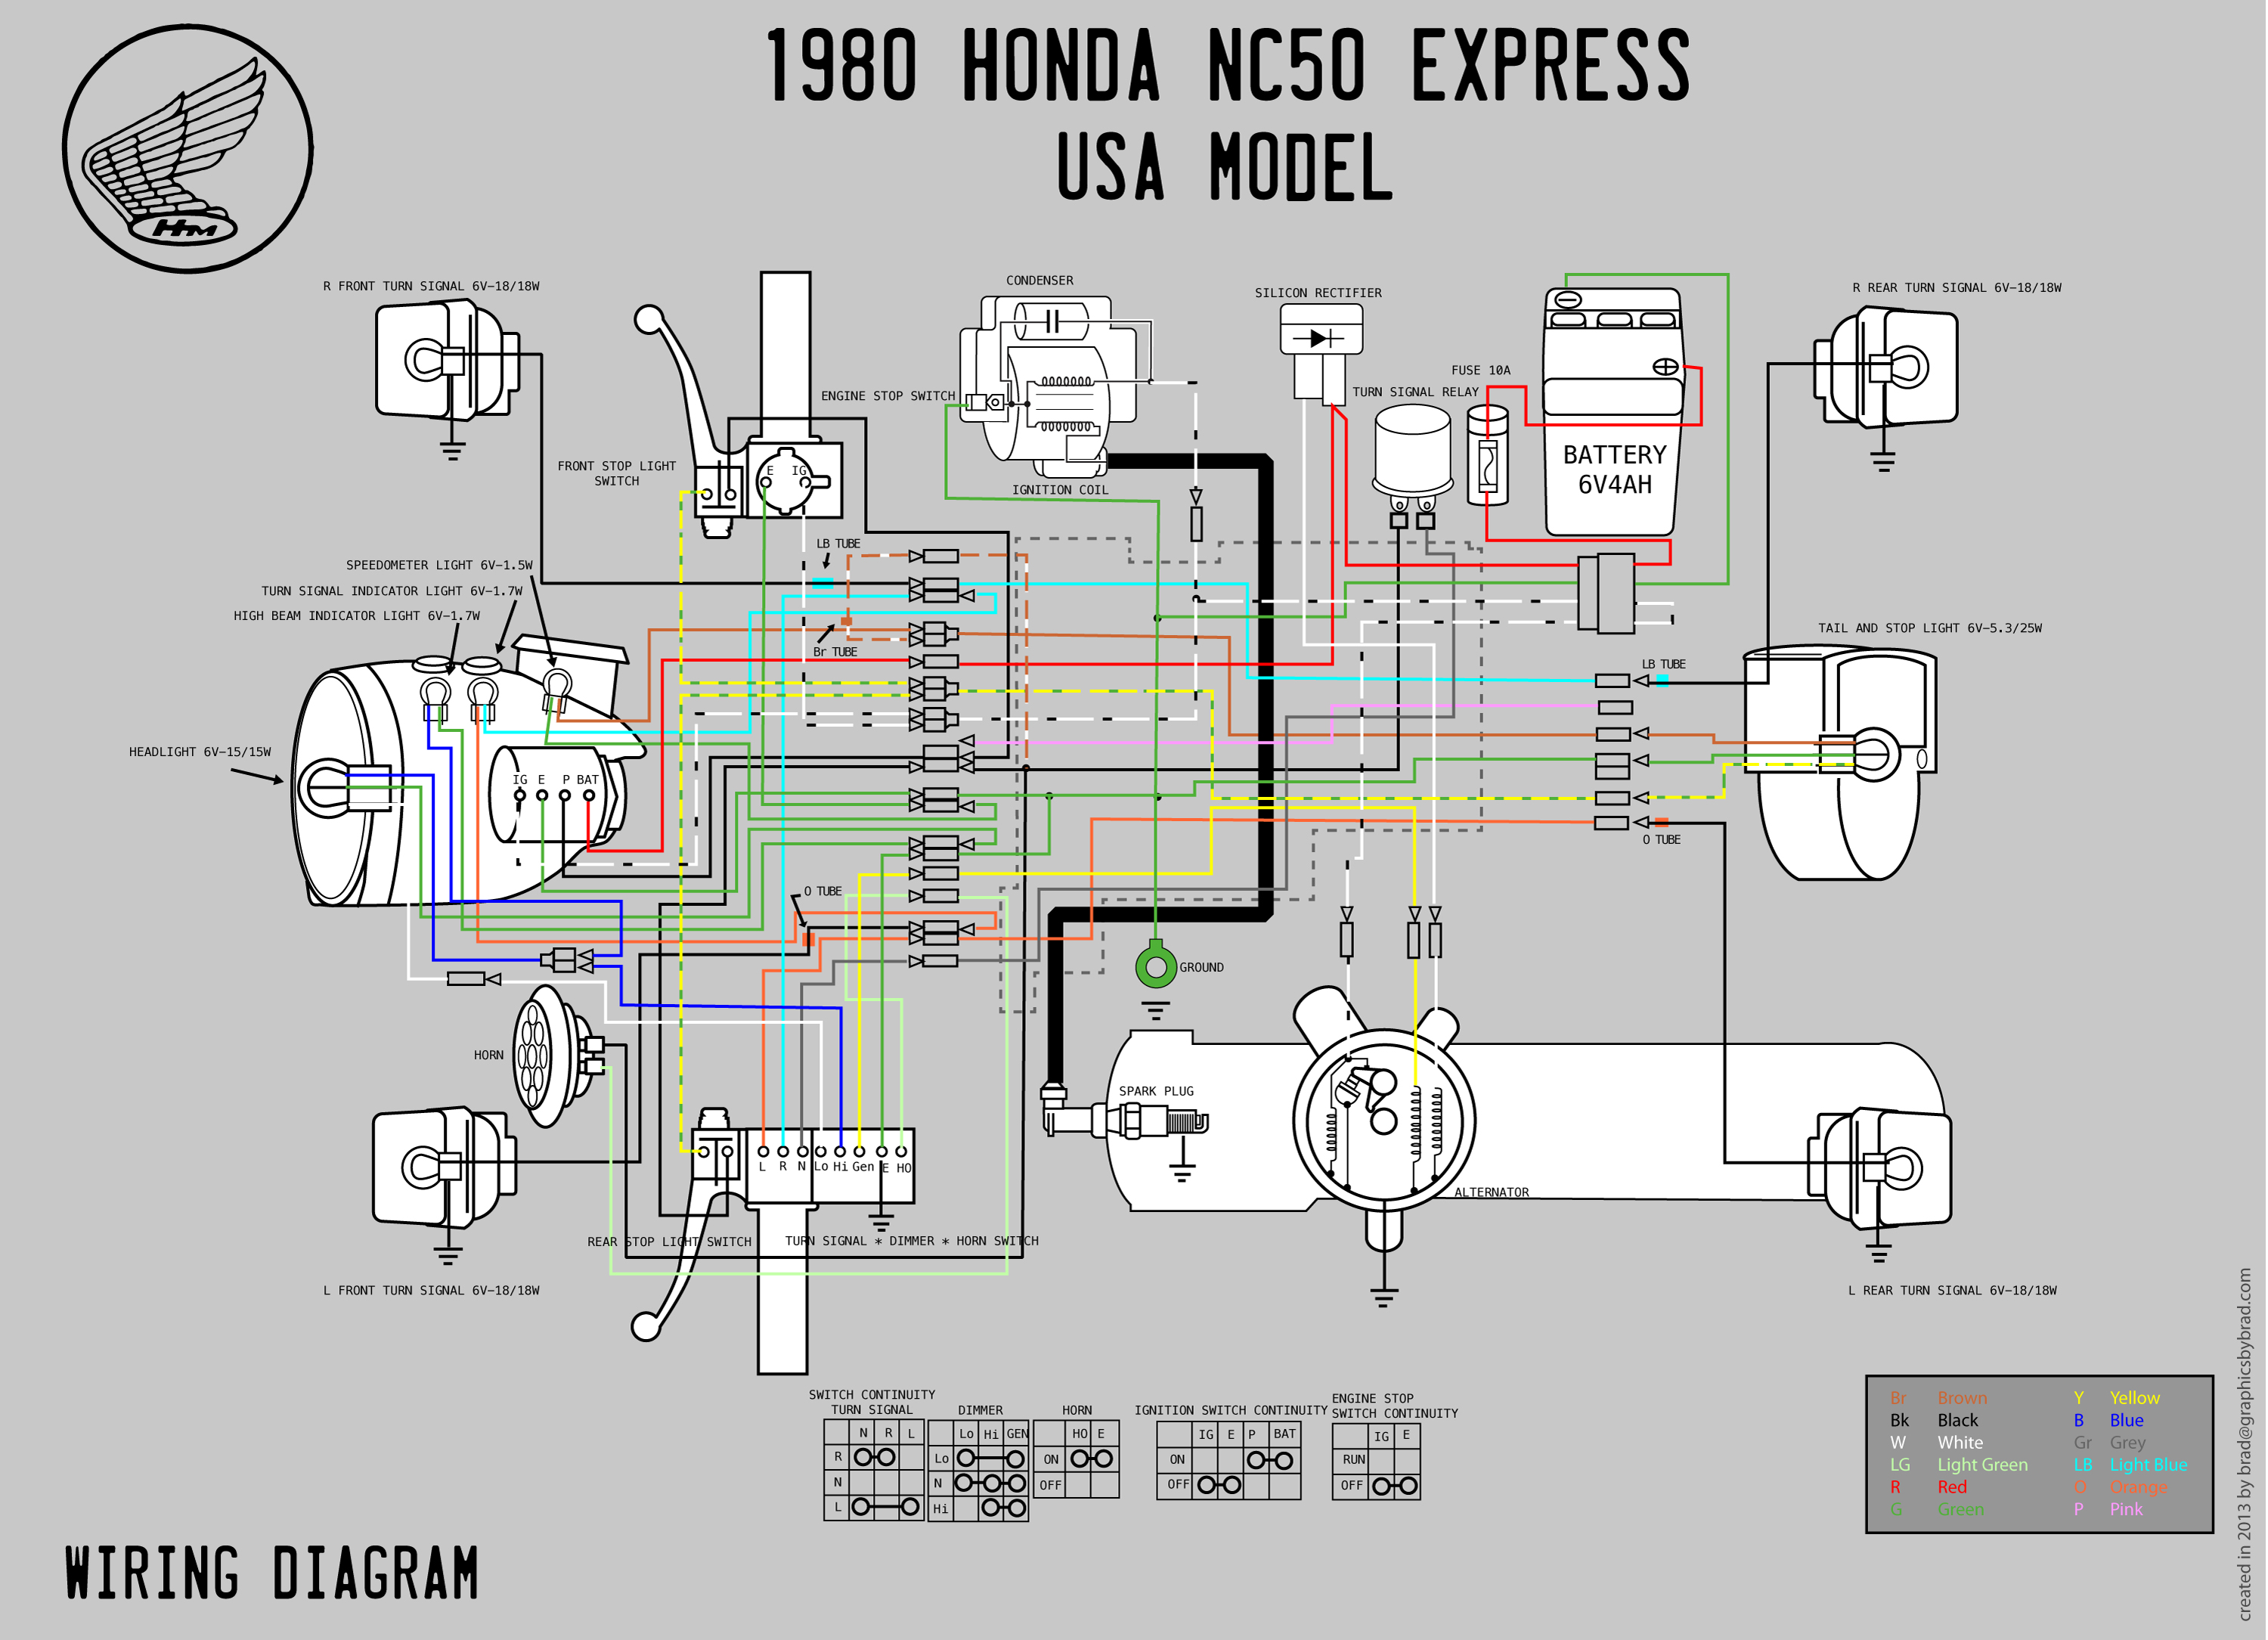 1980 honda nc50 wiring diagram moped wiki rh mopedarmy com Trailer Wiring Diagram 50Cc Scooter Wiring Diagram